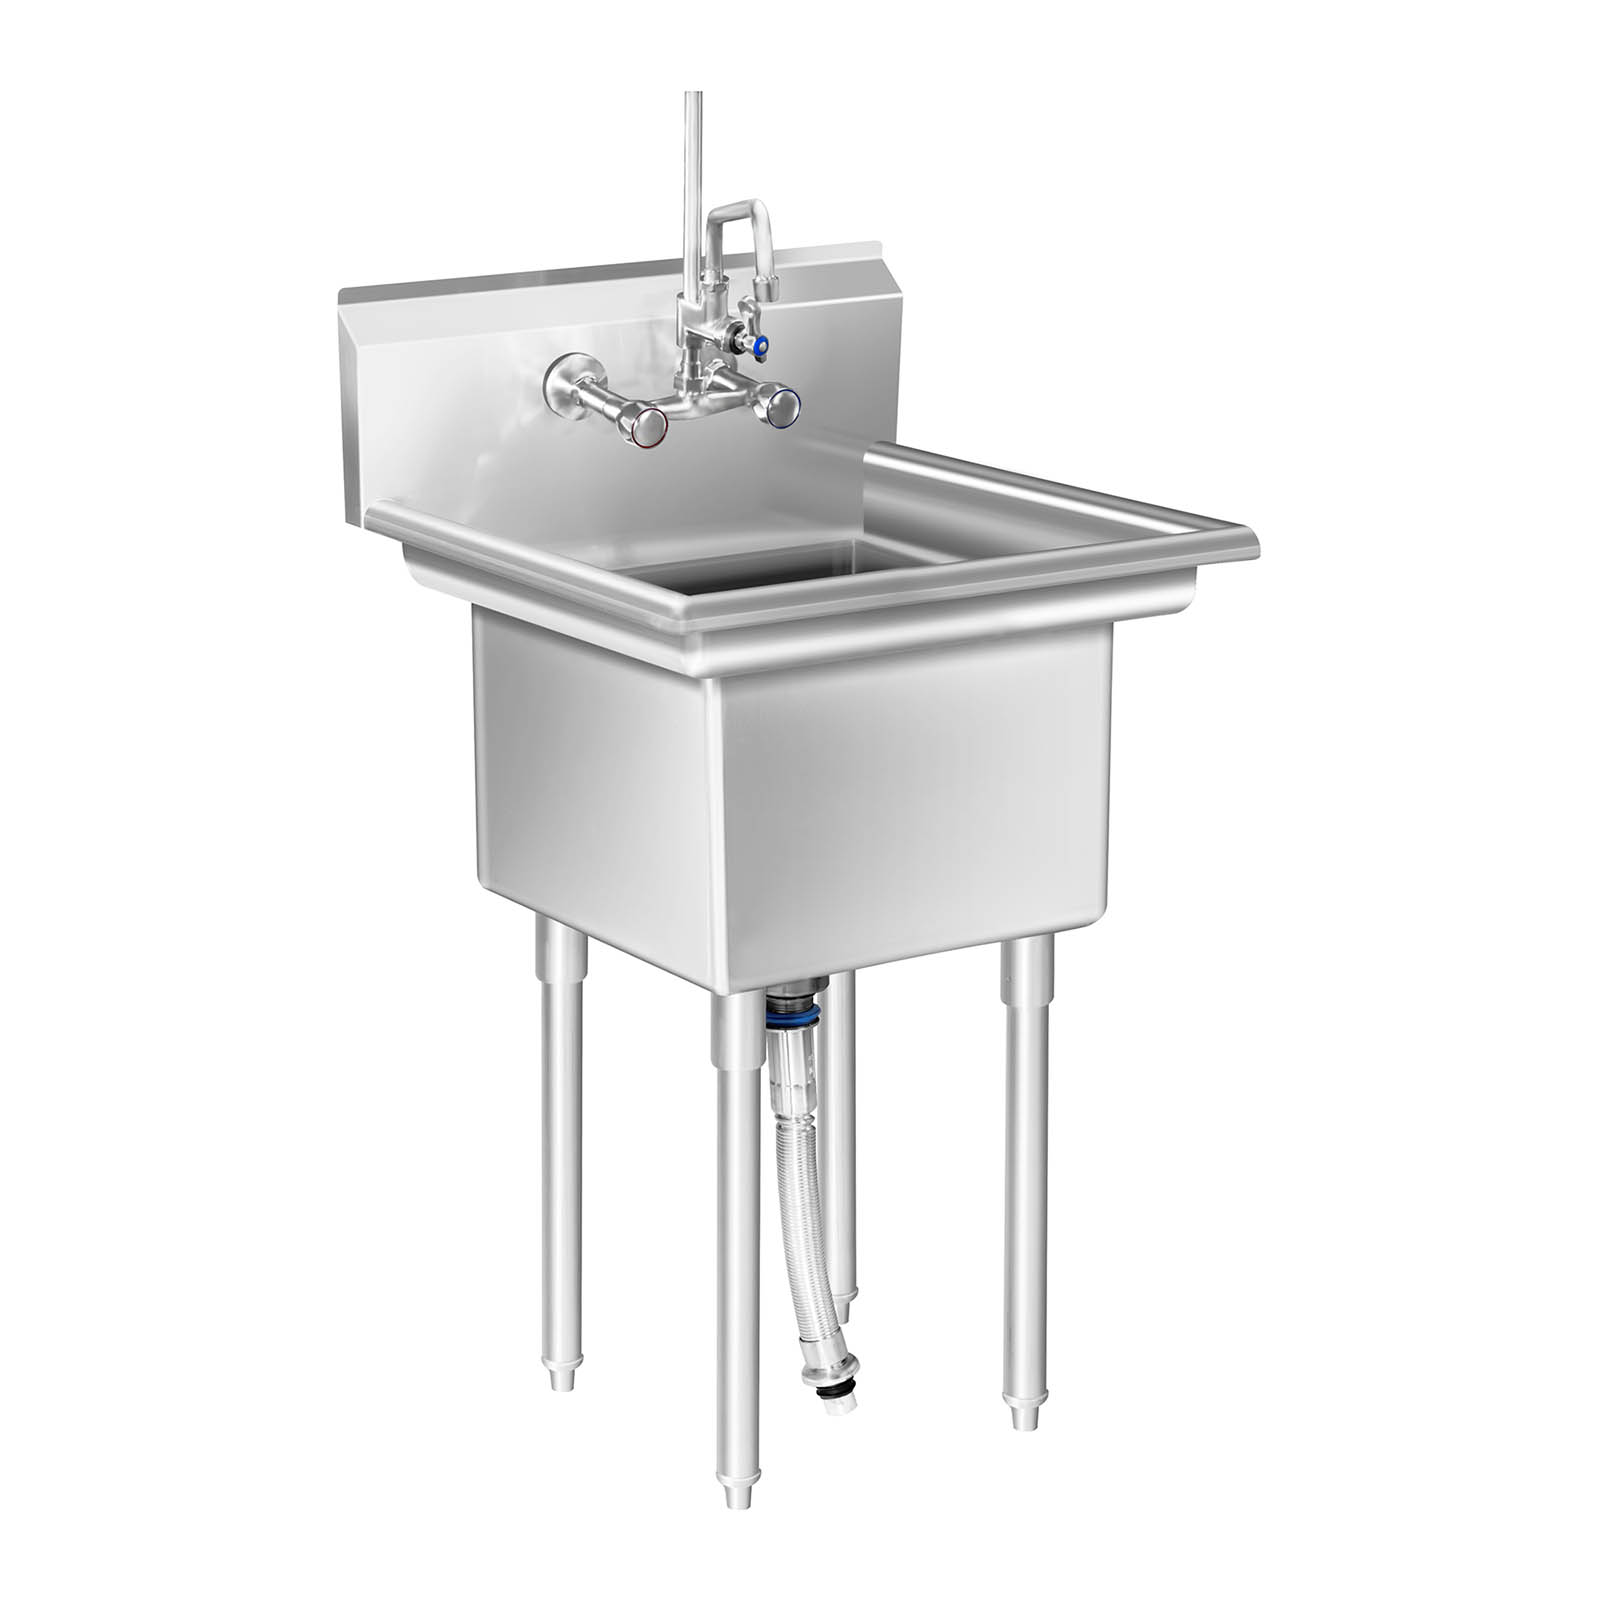 commercial kitchen sink units sink large kitchen sink unit 3 basin stainless 5640